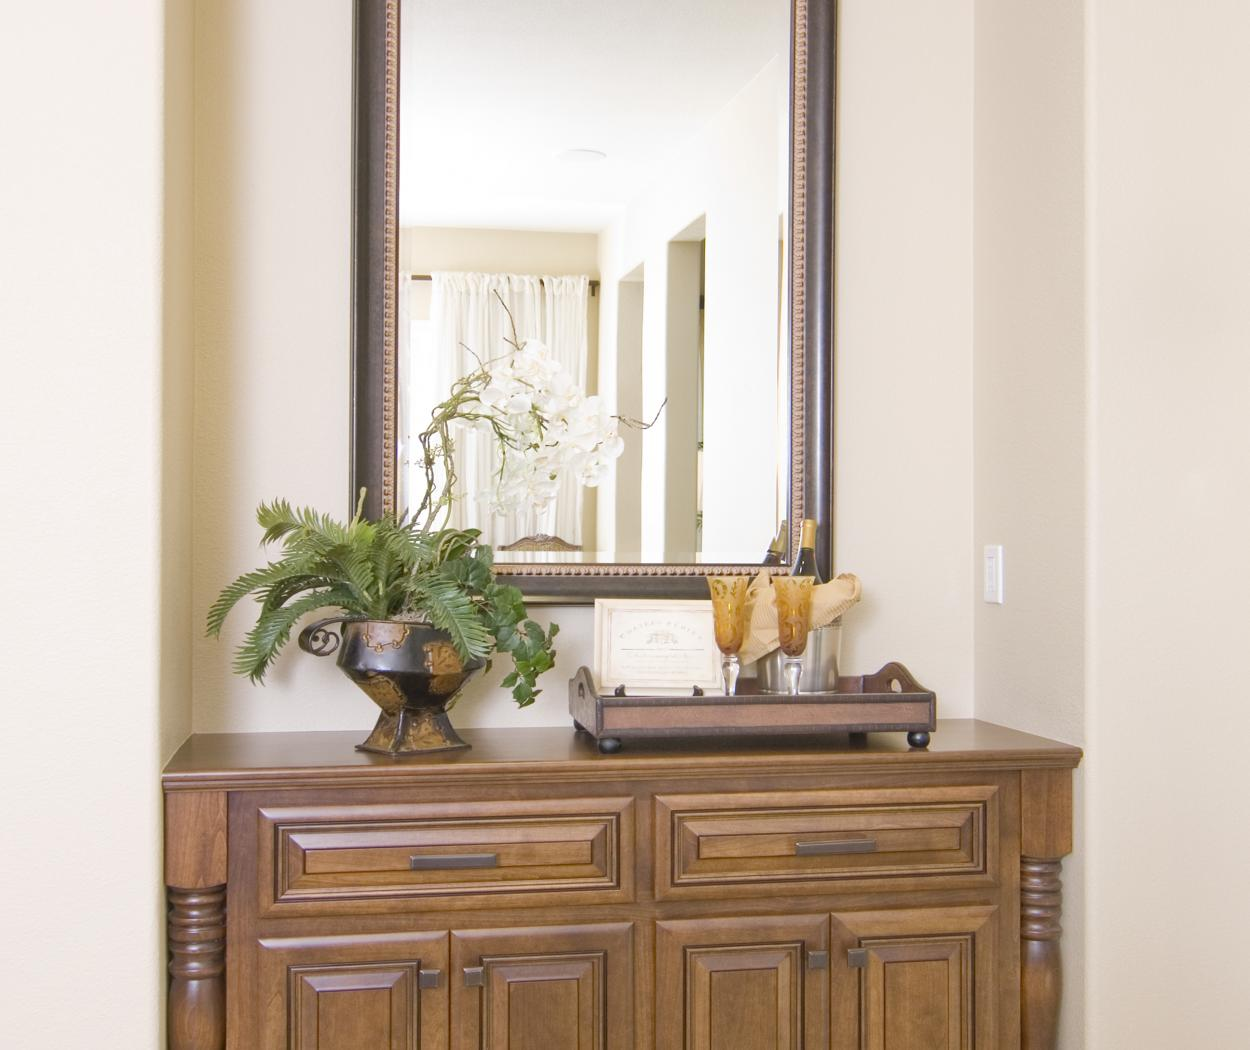 Traditional Stained Built-In with Ornate Decorative Posts and Oil Rubbed Bronze Hardware